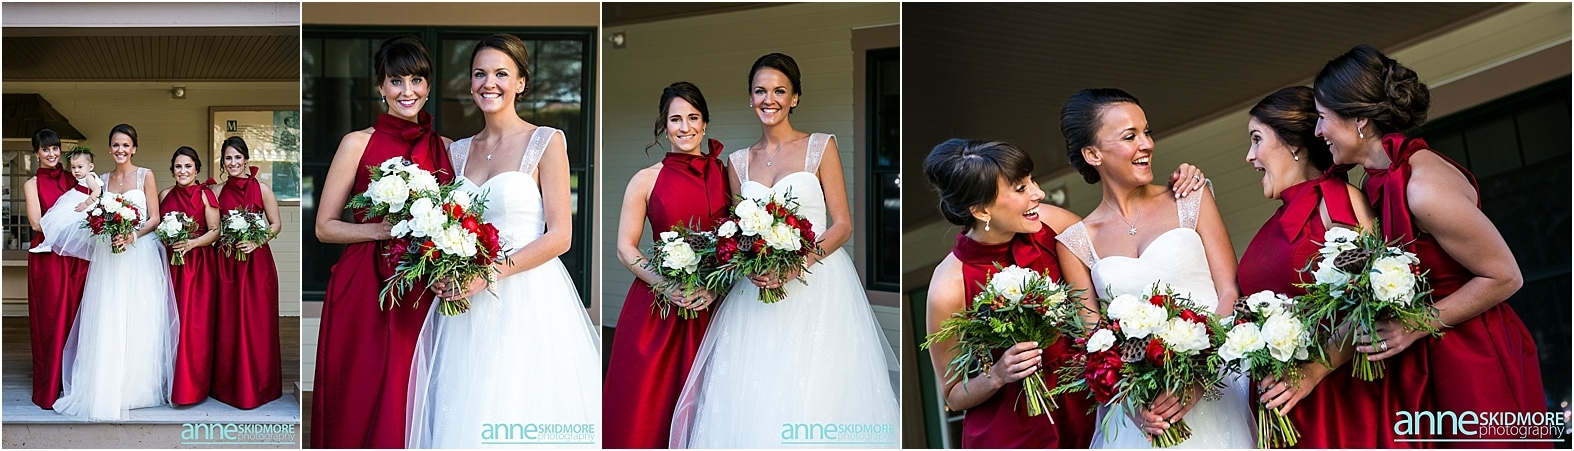 Wentworth_Inn_Wedding_019